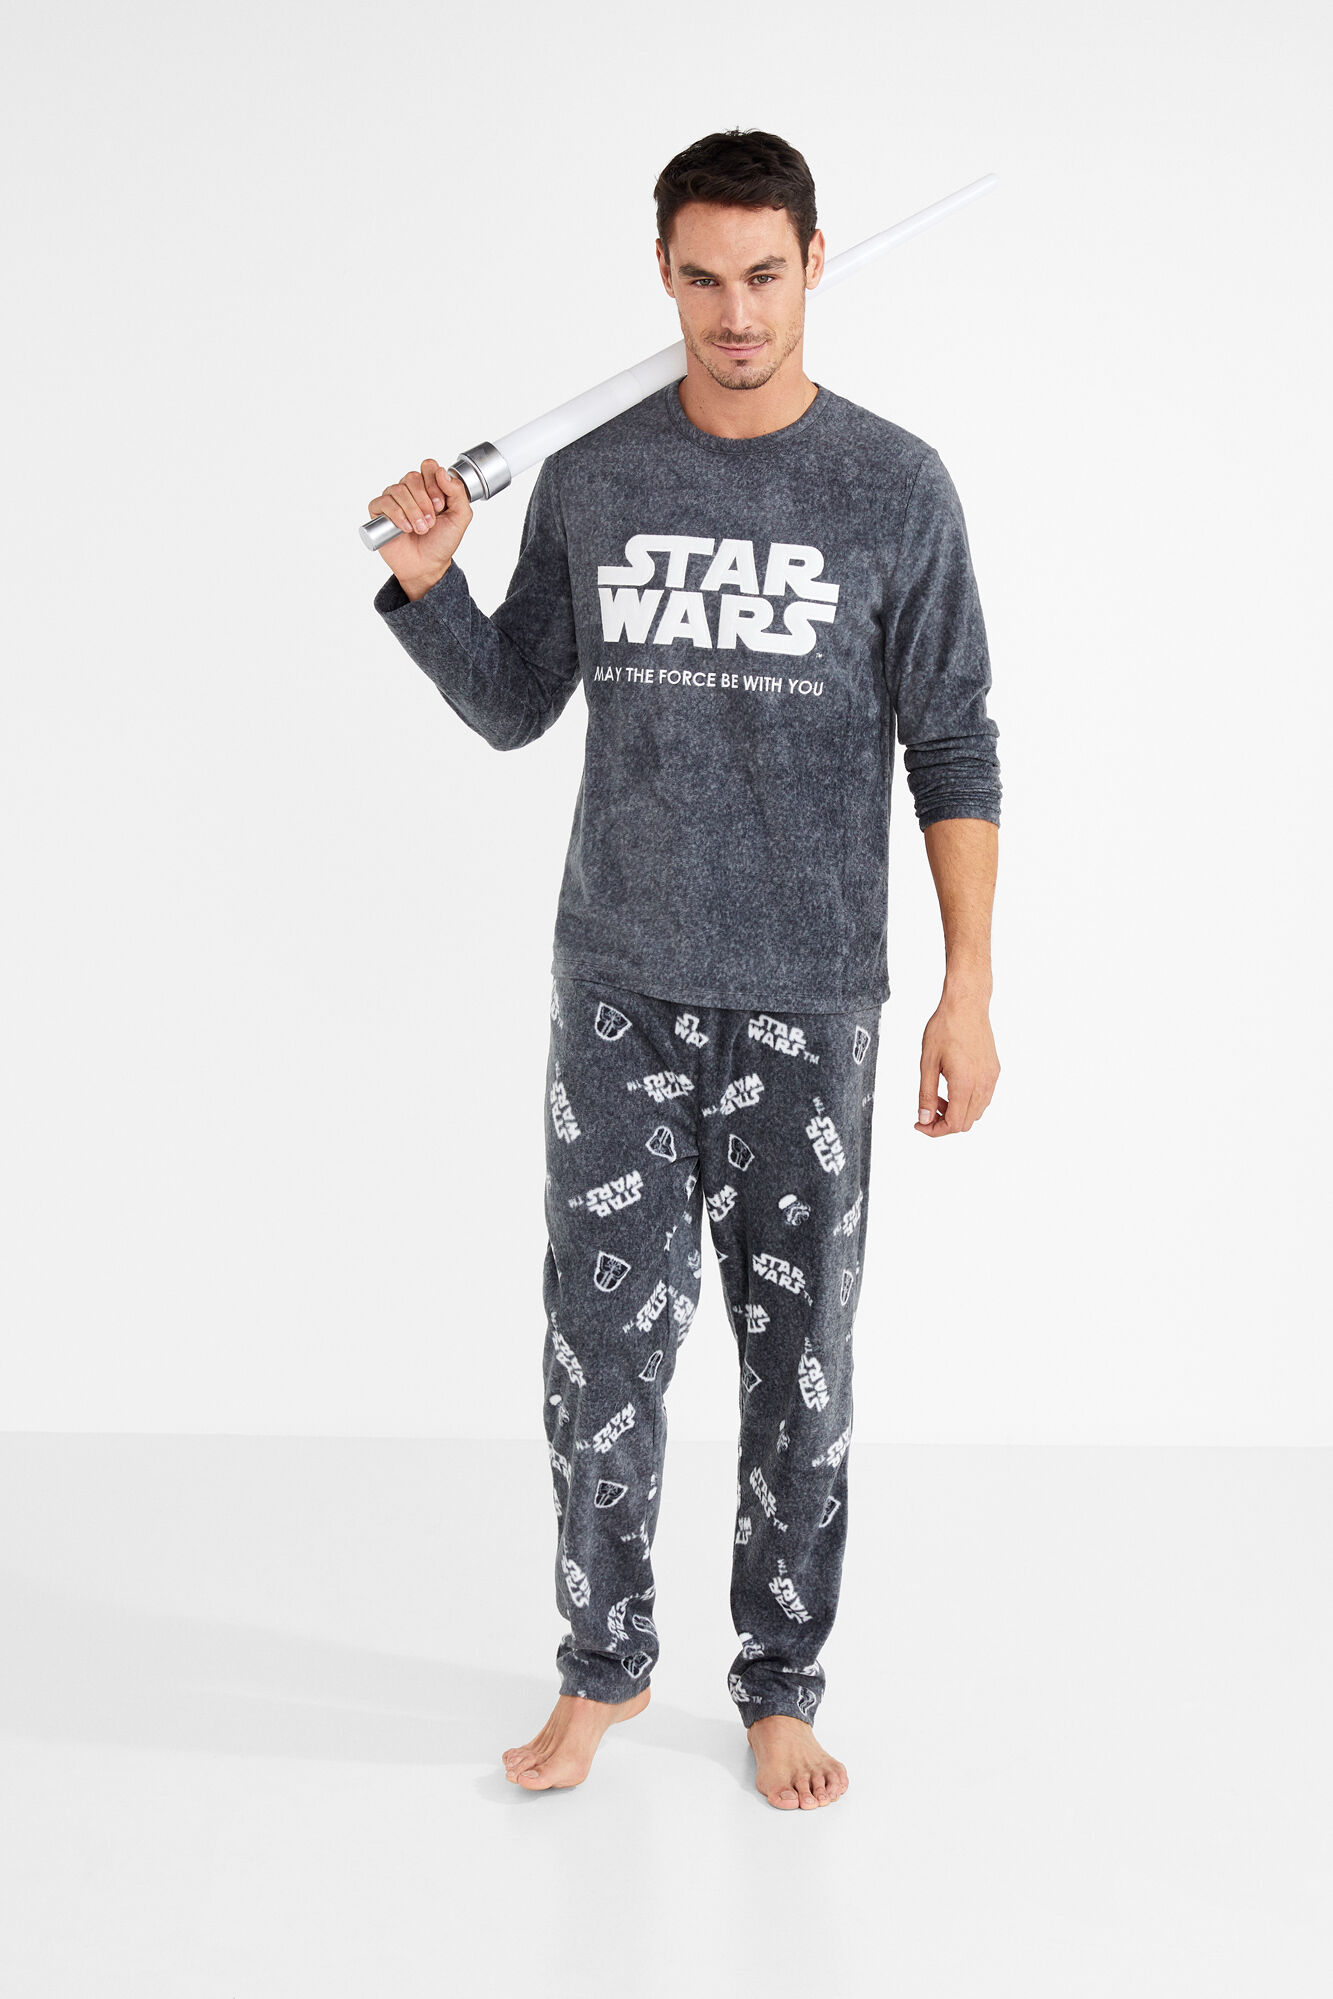 21dacd89 Para HombreMen'secret Pijama Star Women'secret Wars Largo nPv0Oymw8N